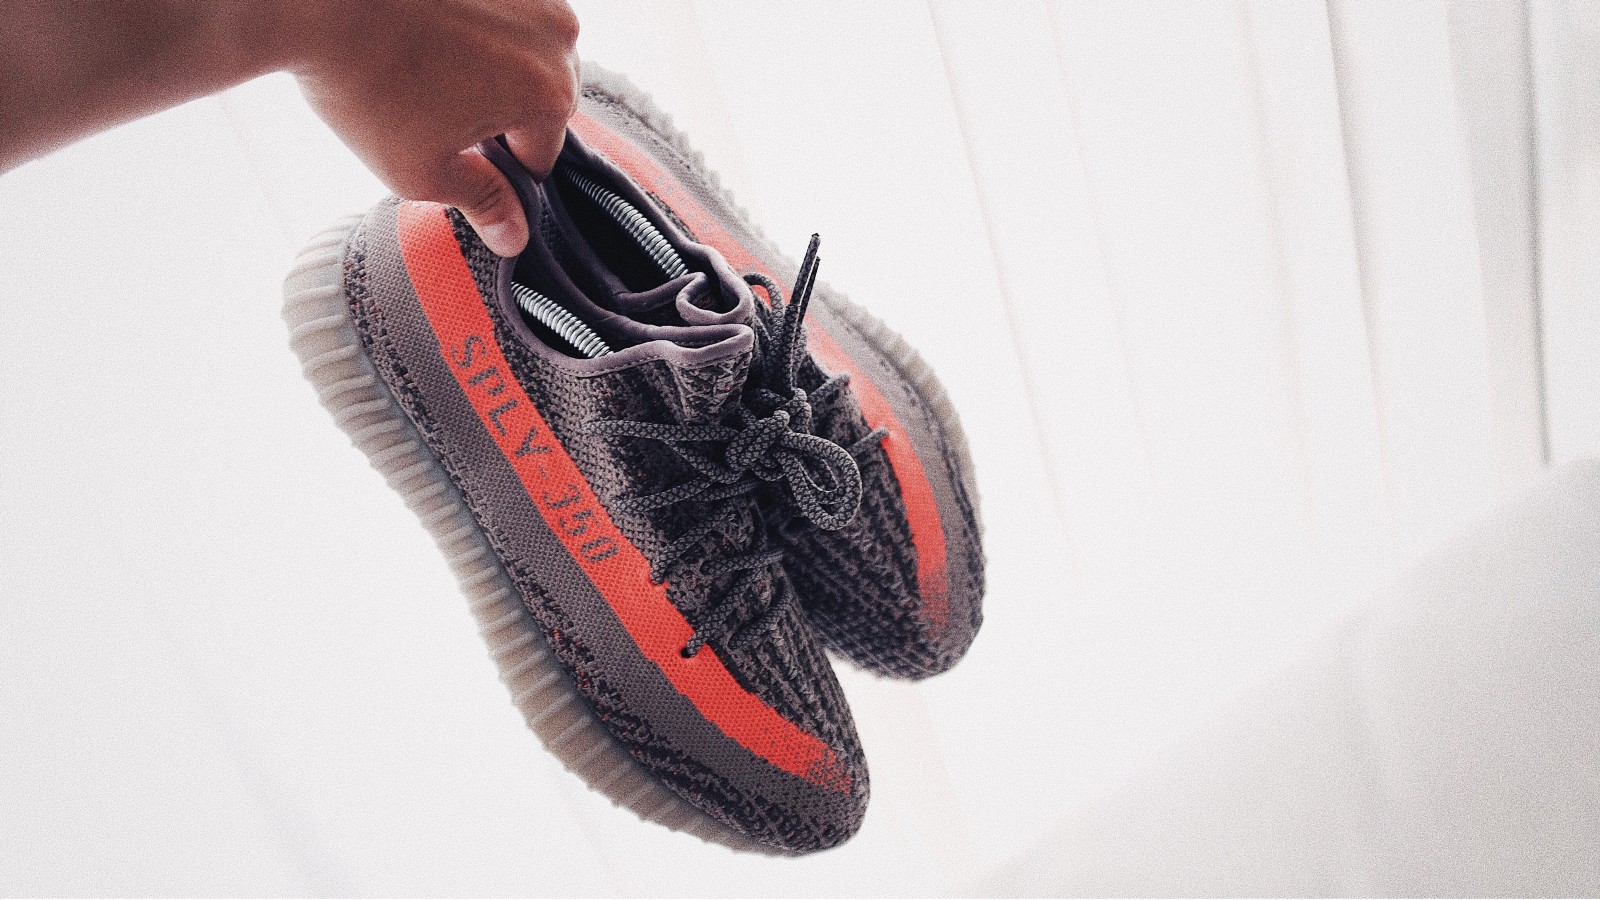 16ee74425 Putting the Yeezy Boost 350 V2 Legit Check Guide to the Test